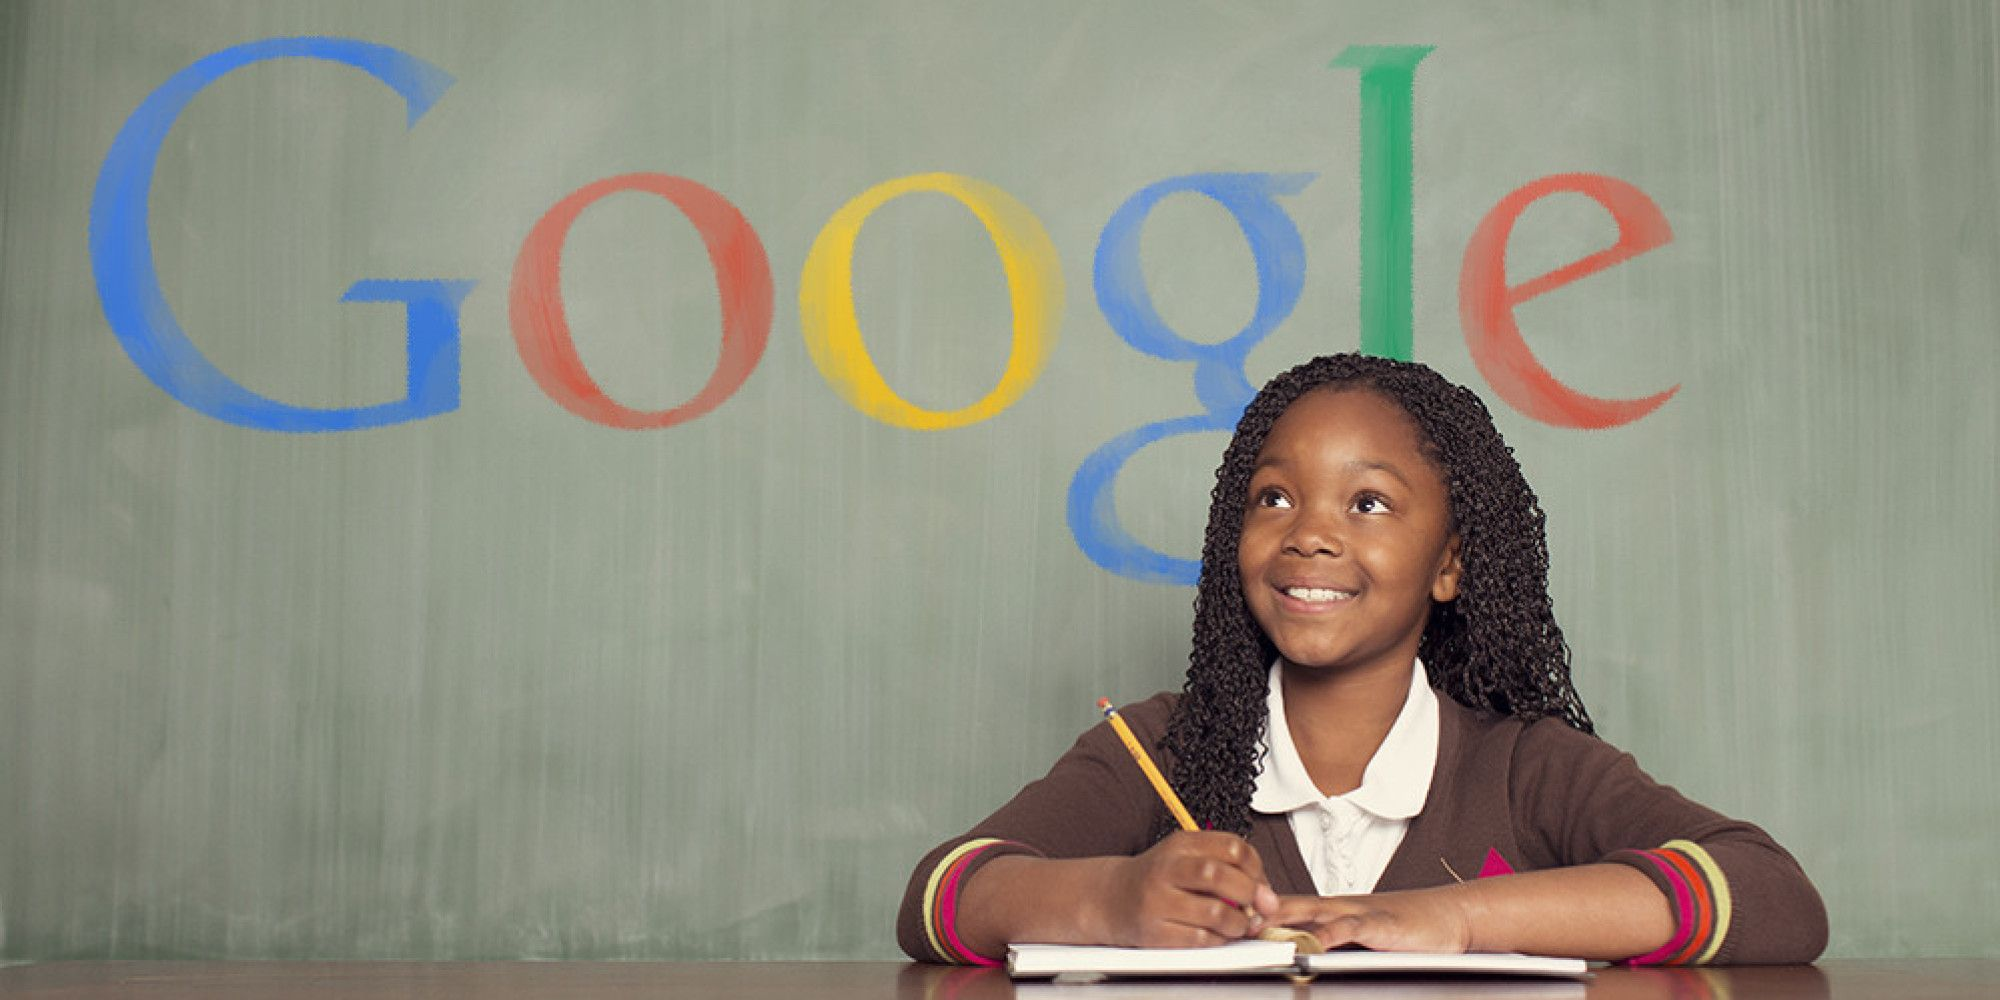 29 Awesome Things You Didn't Know About Google (But Should)